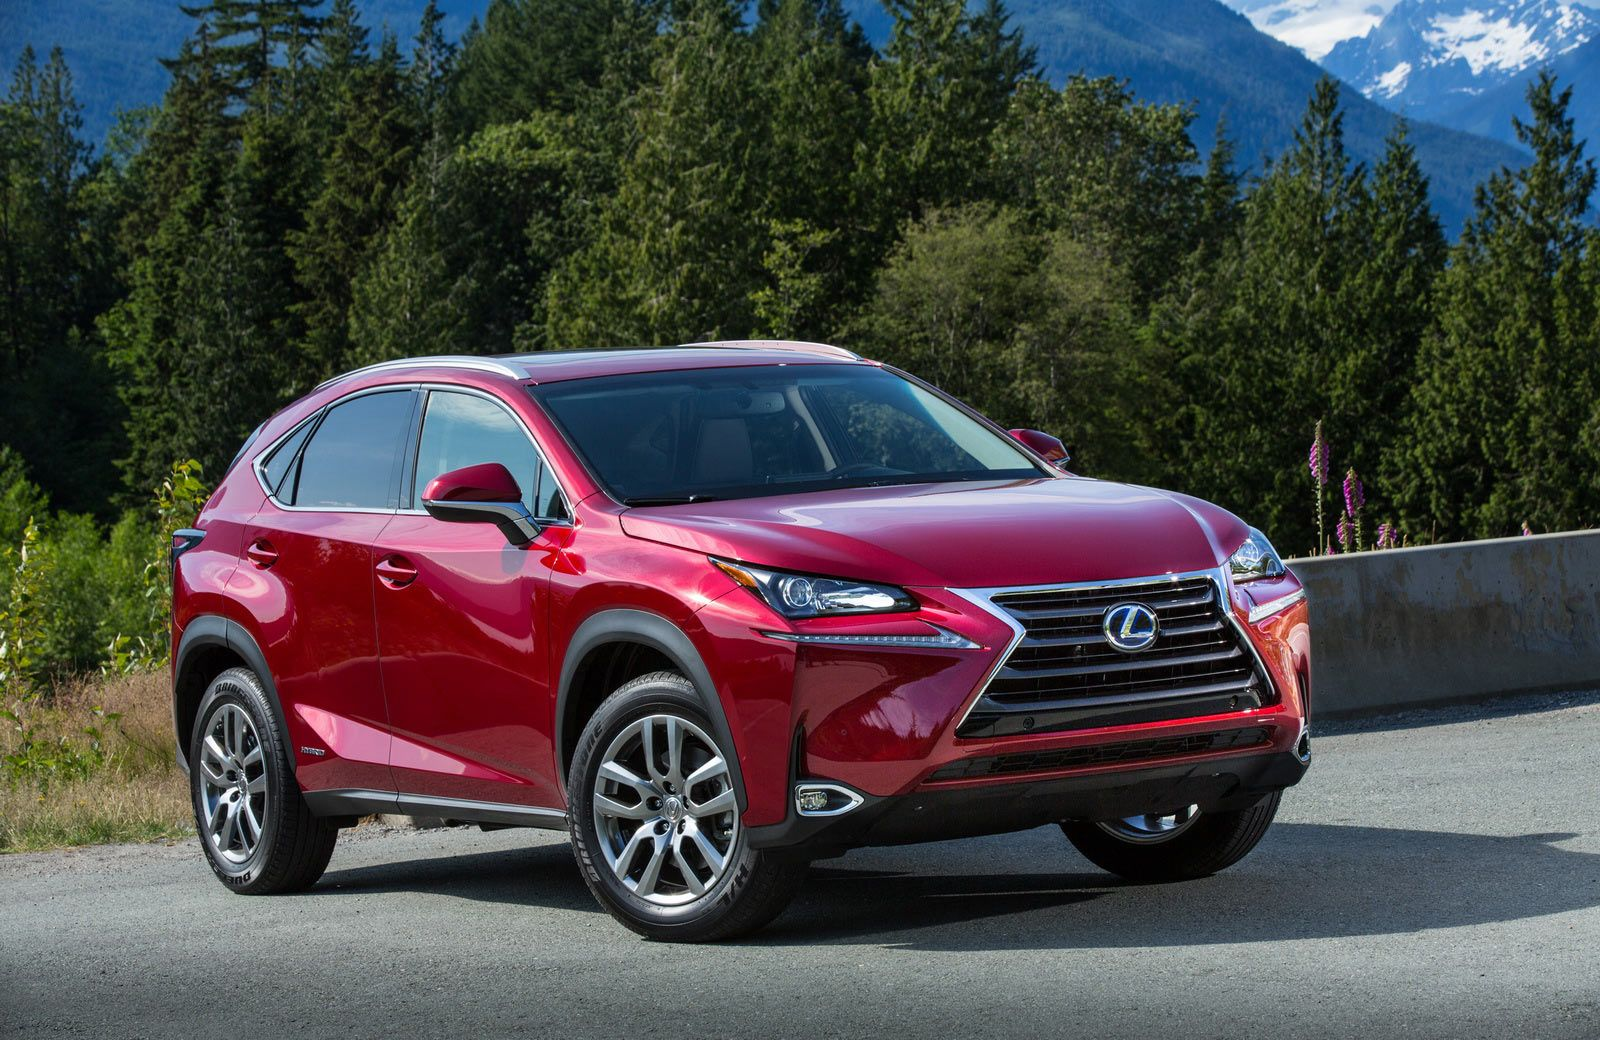 Toyota Prius Lexus Nx And Rx Recalled Over Airbag Issue Carscoops Fuel Efficient Suv Hybrid Car Small Suv